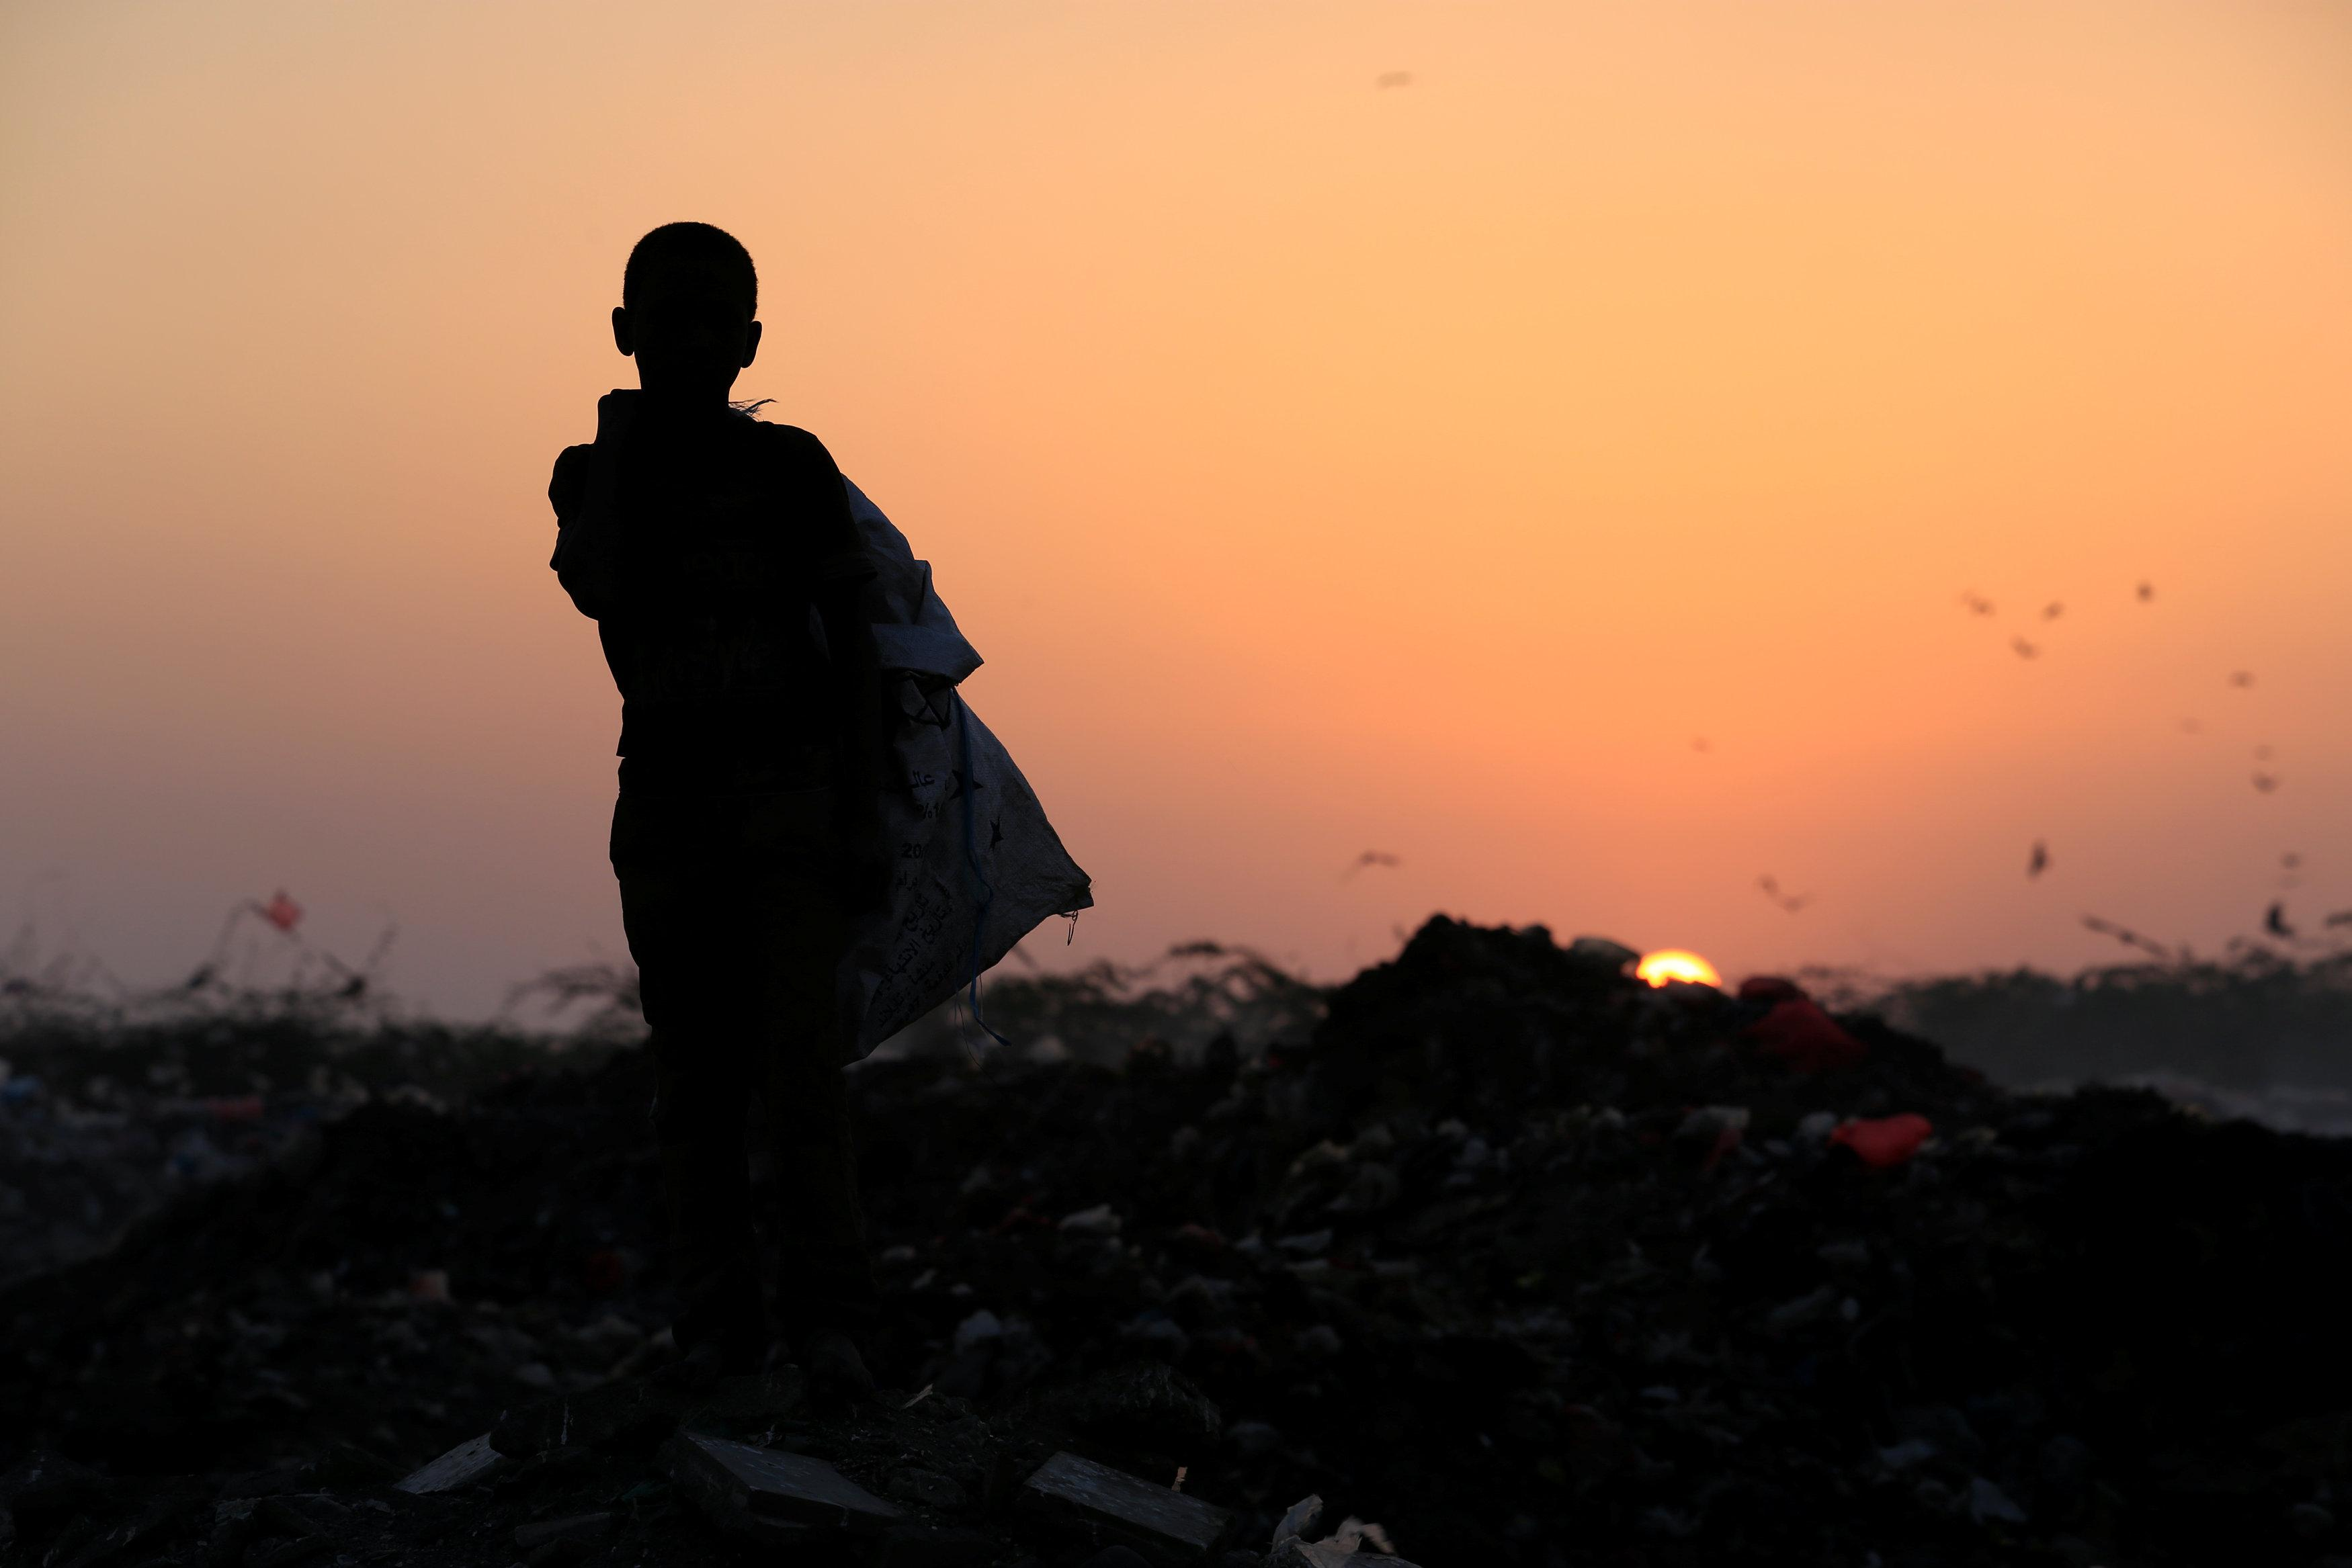 Ayoub Mohammed Ruzaiq, 11, stands in a garbage dump where he collects recyclables and food near the Red Sea port city of Hodeidah, Yemen, January 13, 2018.  Abduljabbar Zeyad